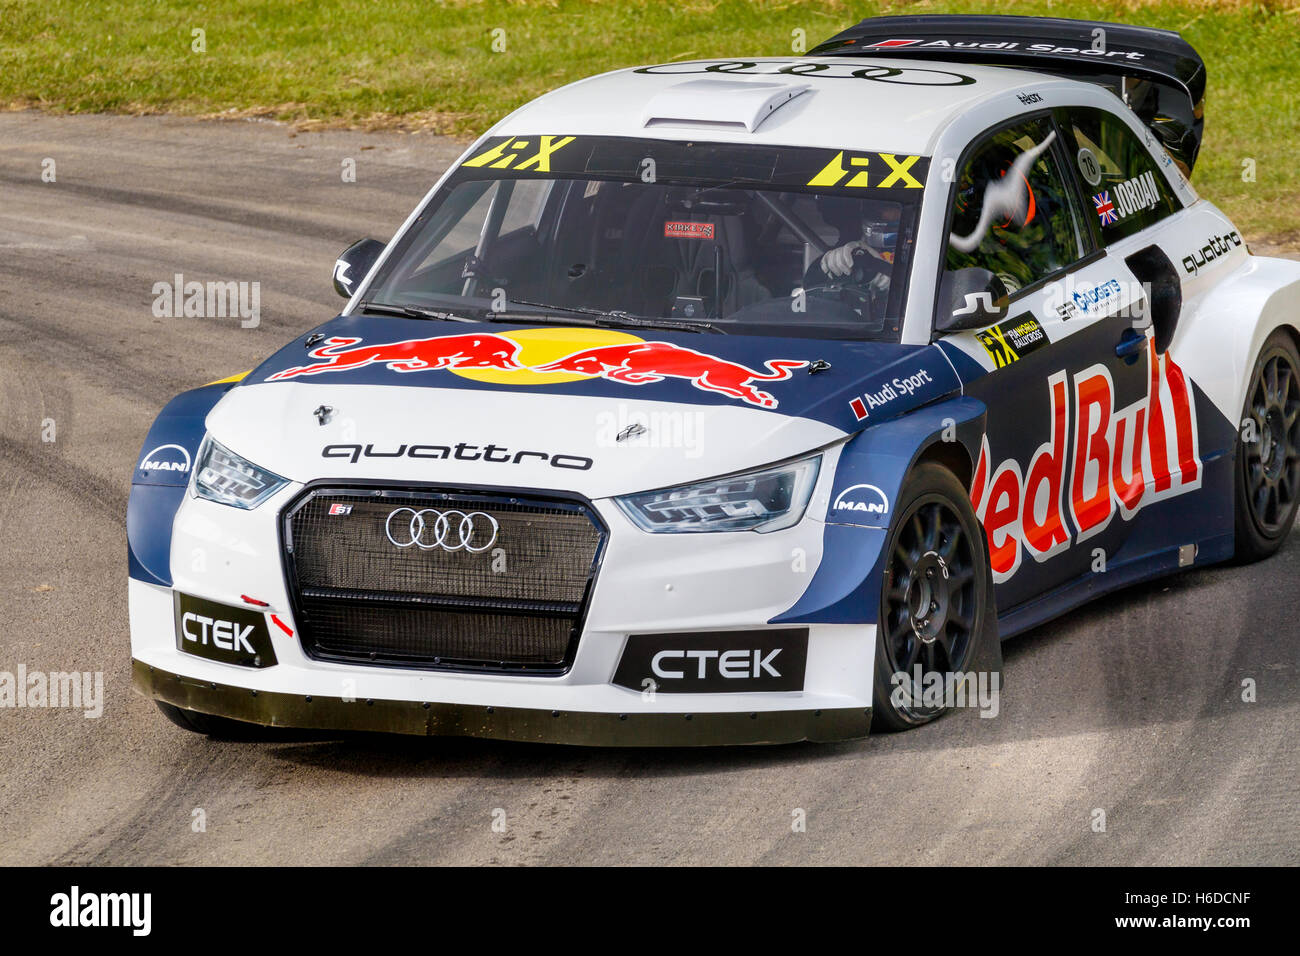 Audi S EKS RX Rallycross Car With Driver Andrew Jordan At - Audi car jordan